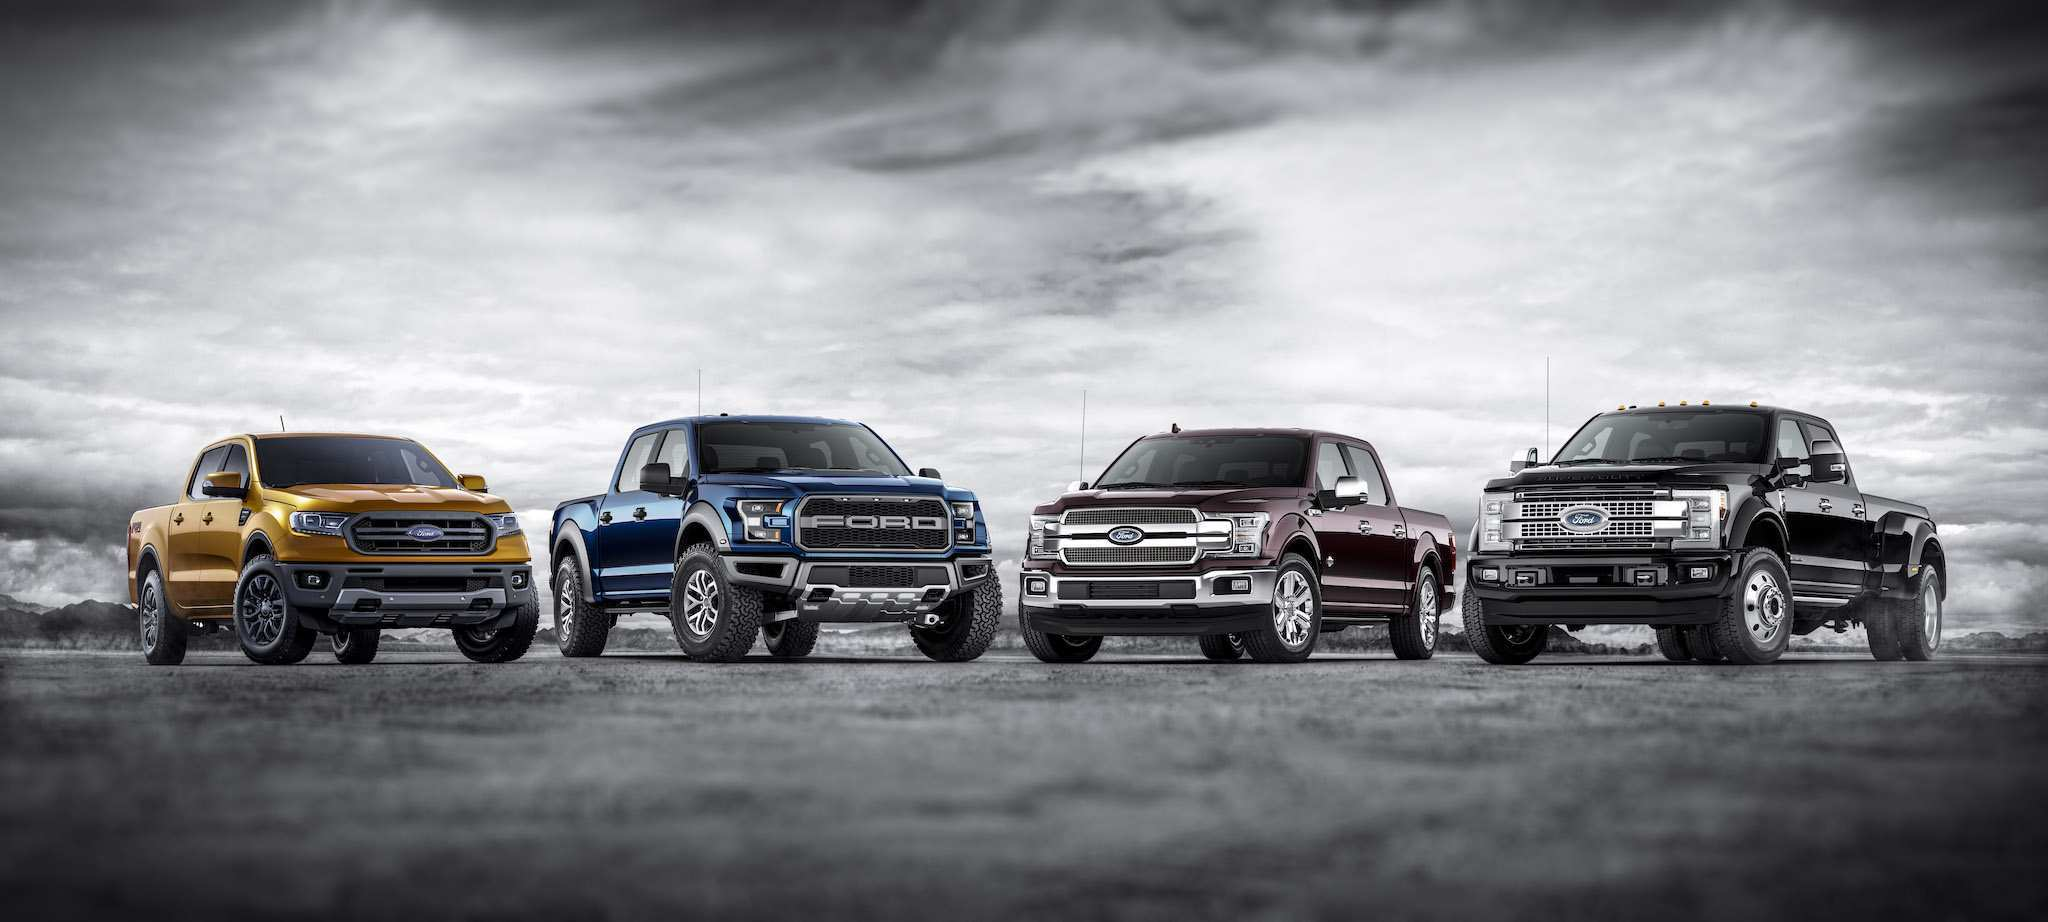 73 All New 2020 Ford Lineup 2 History with 2020 Ford Lineup 2